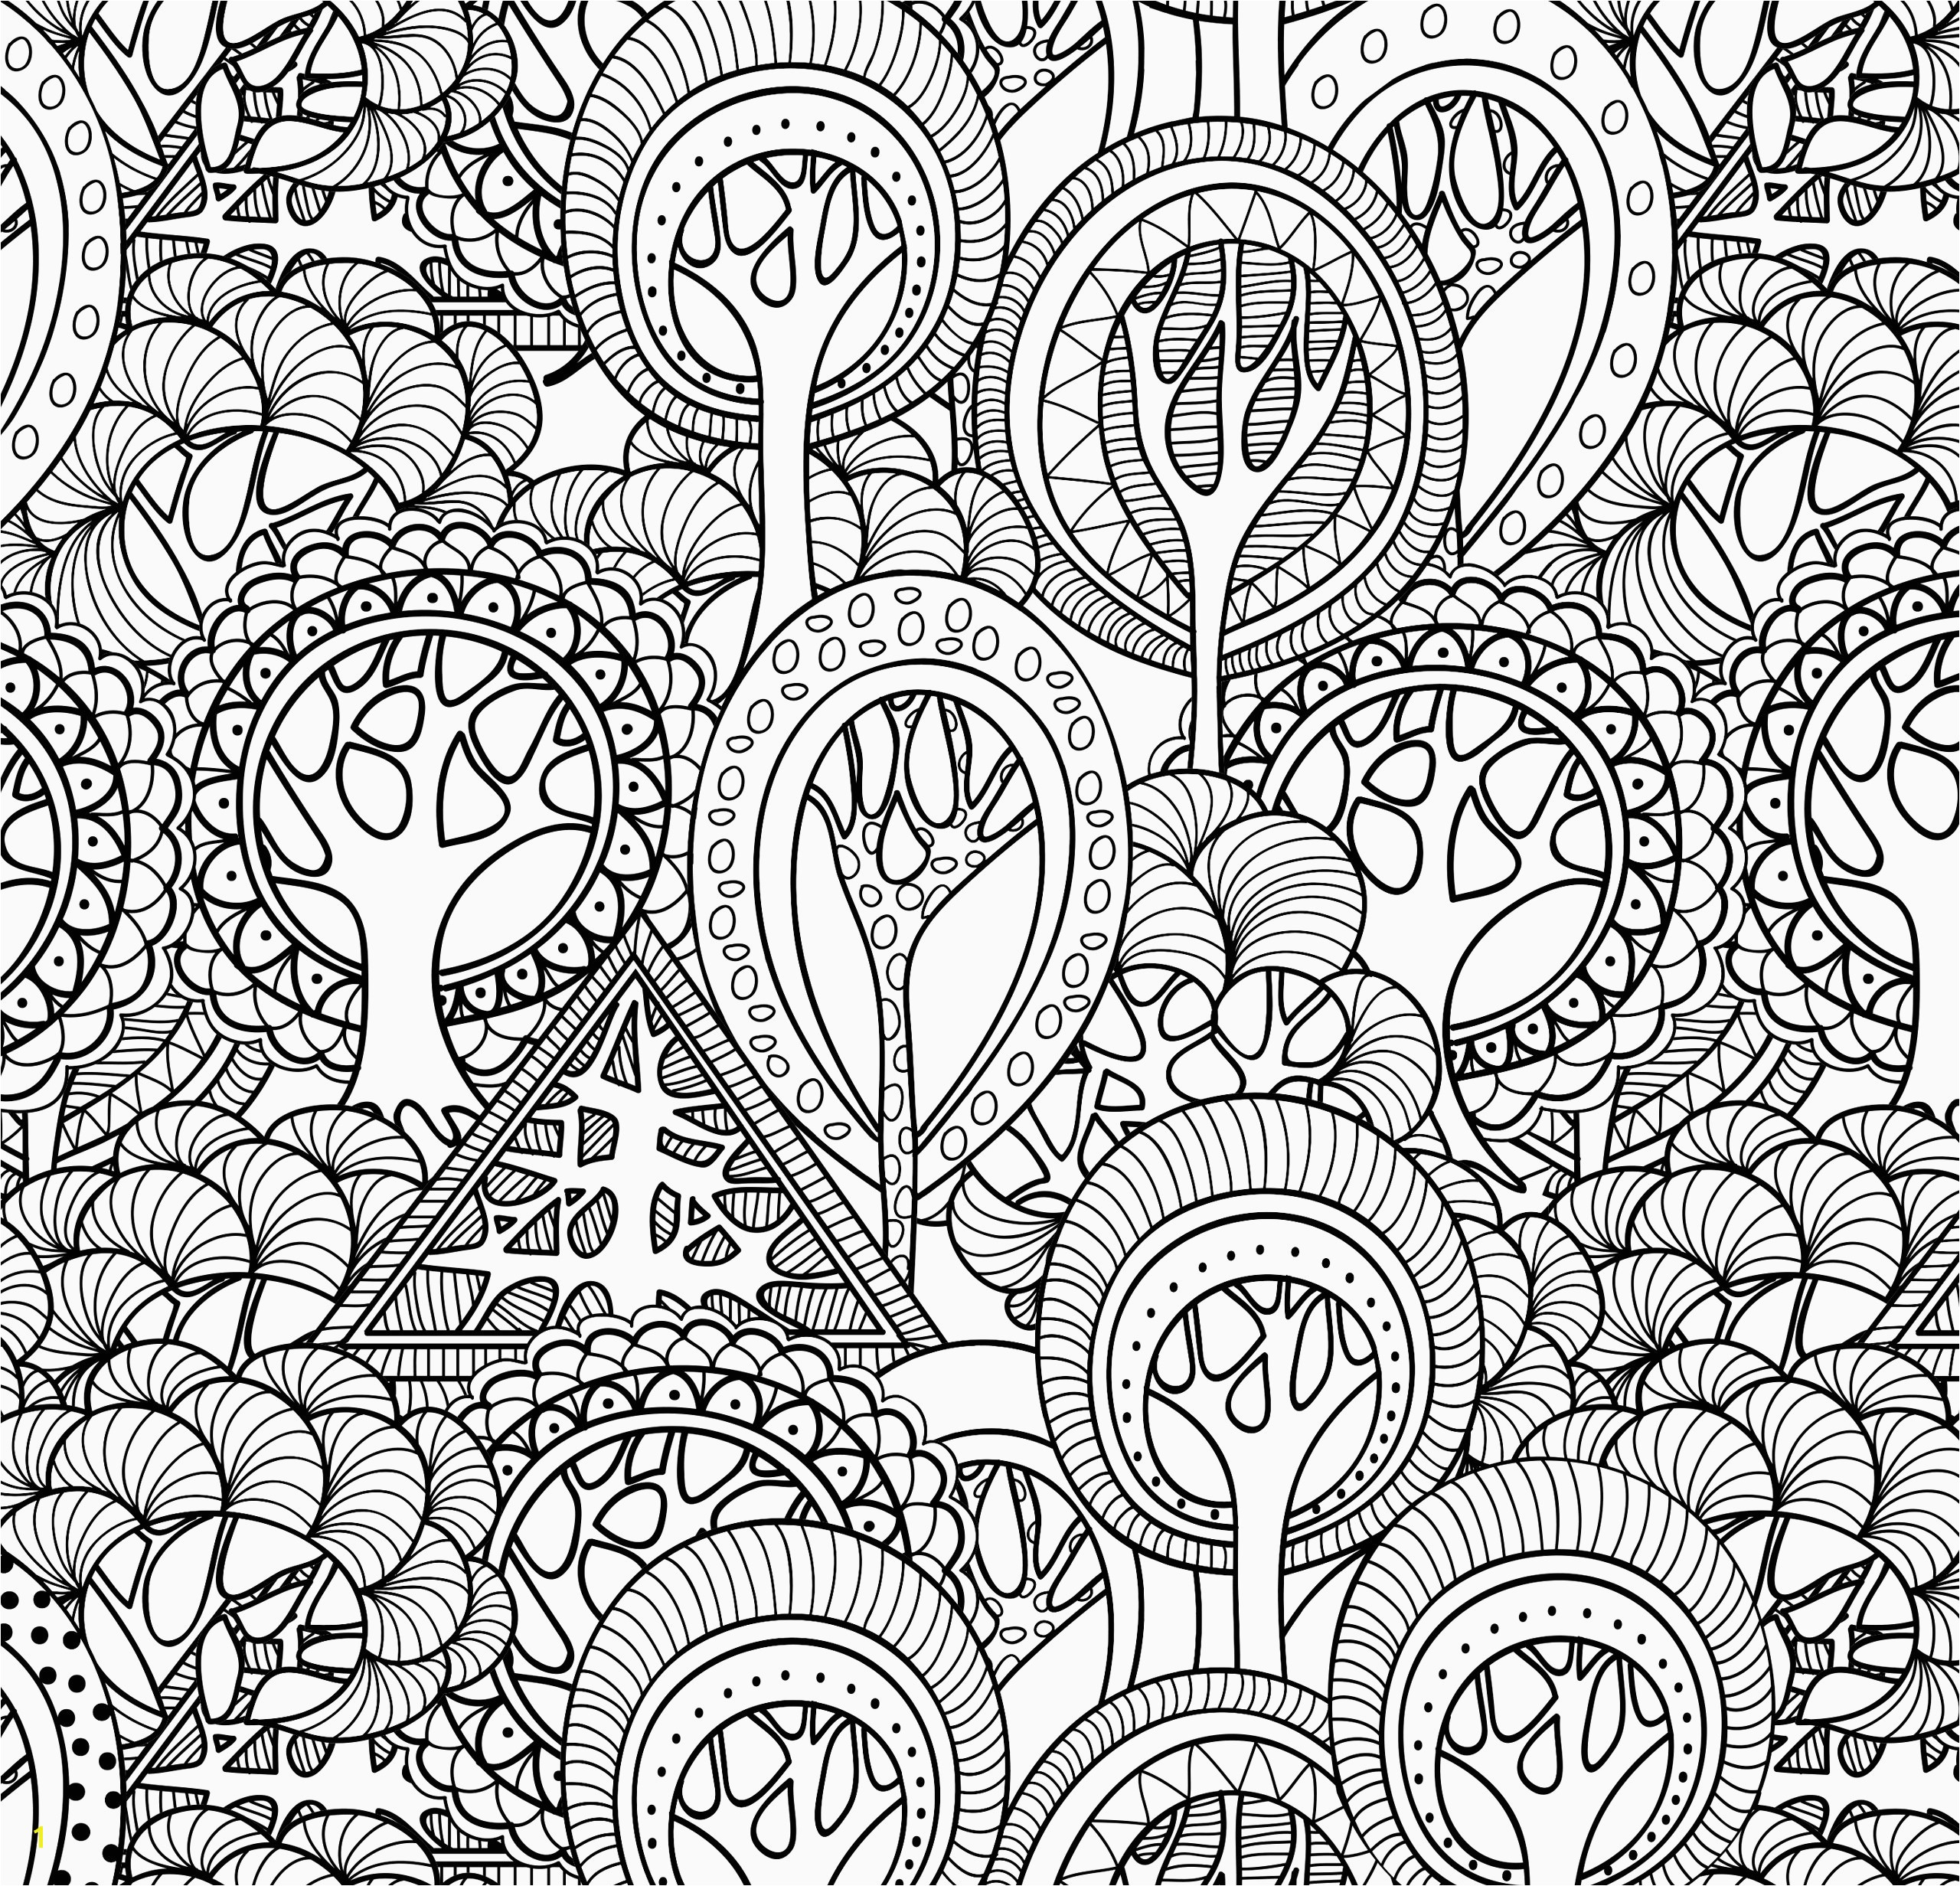 Aztec Pattern Coloring Pages Puzzle Coloring Pages Beautiful Print Free Mandala to Color Maze